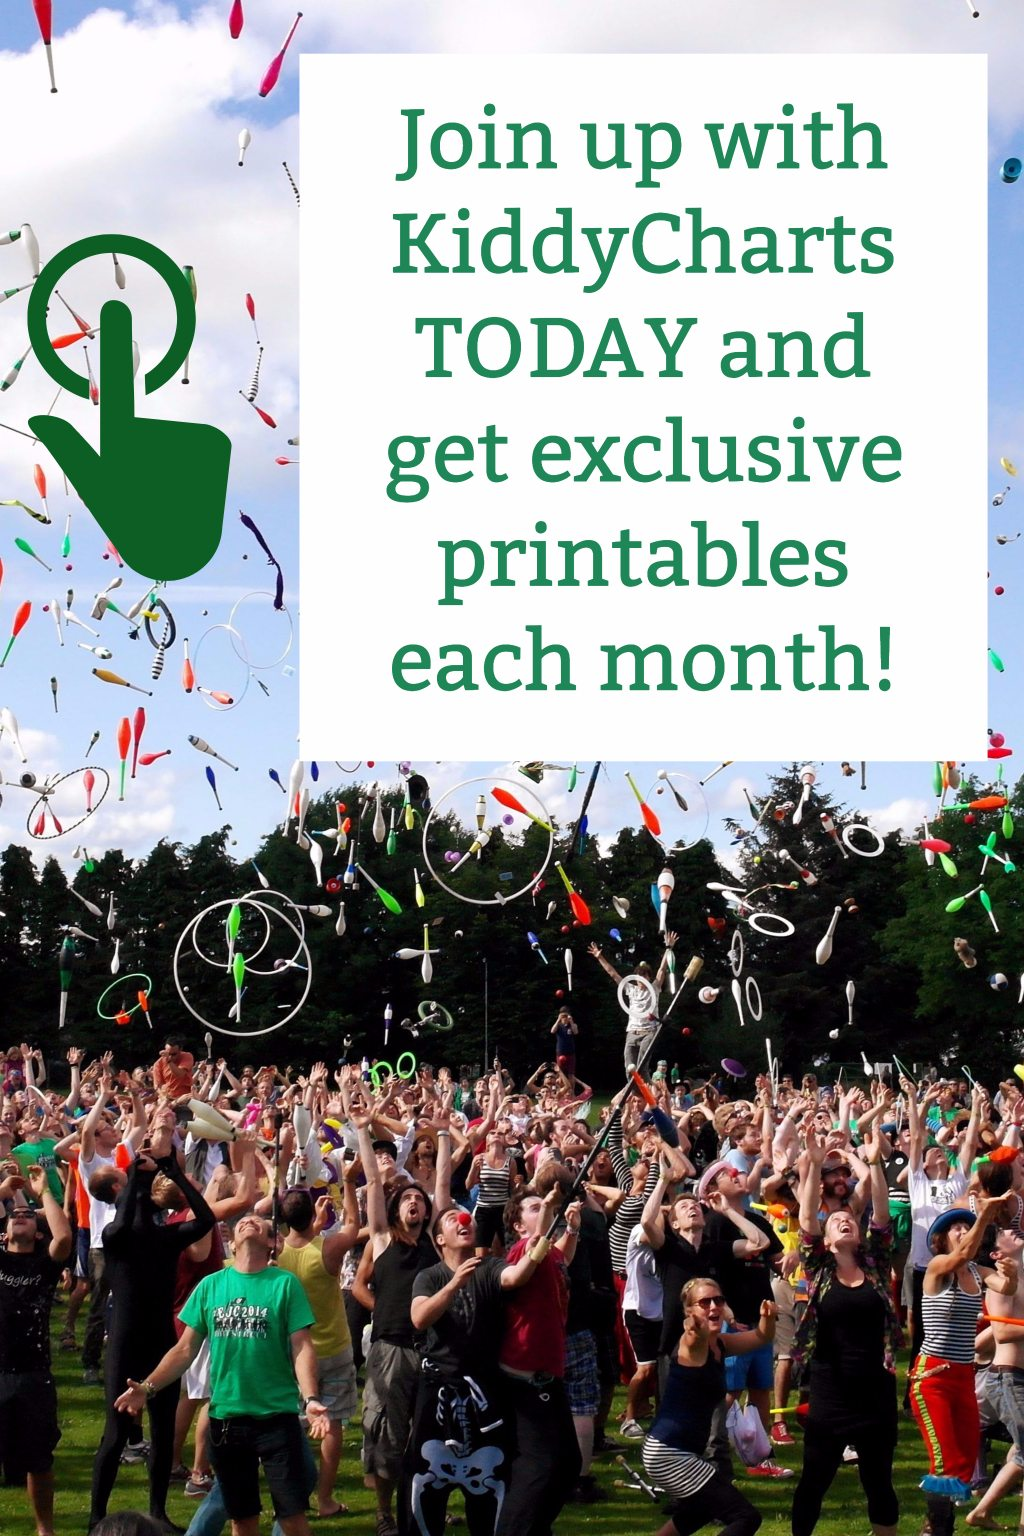 Do YOU want to be a member of an exclusive club and get gree printables each month for the kids, to keep them busy so you can finally have THAT sit down for a bit? Then join us here at KiddyCharts for our exclusive printables in our KiddyCharts KiddyClus Crew! We want YOU!